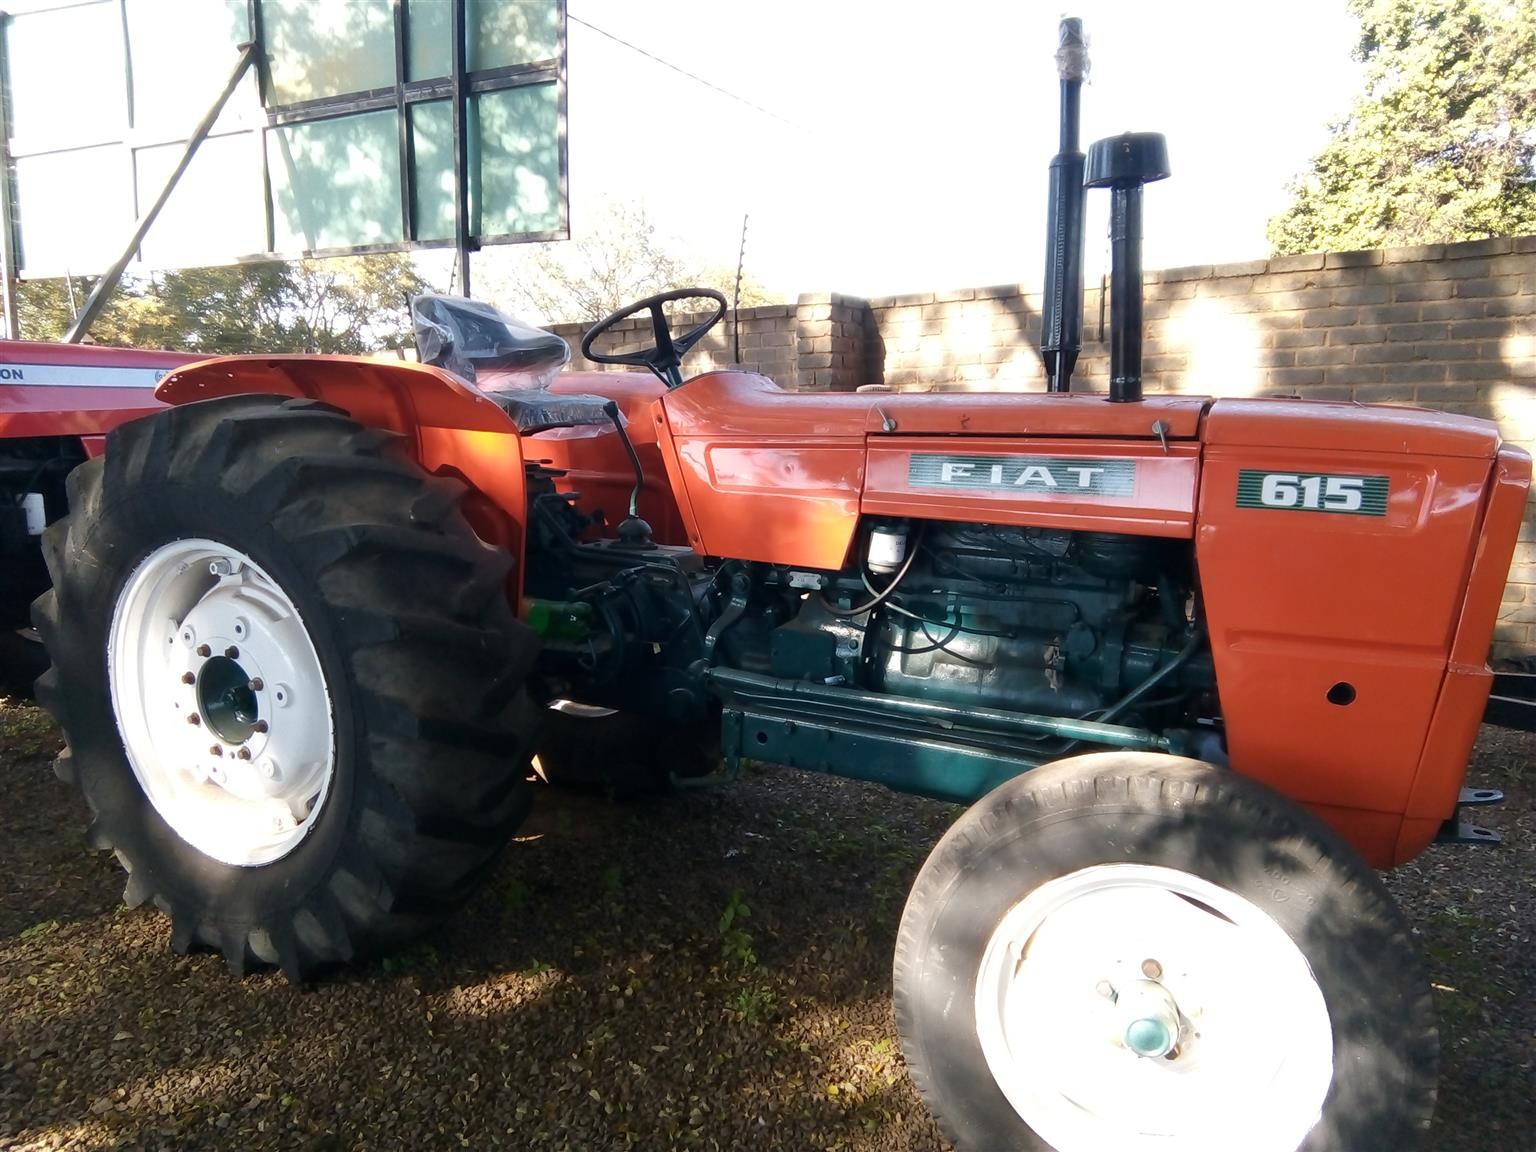 S2937 Orange Fiat 615 49kW/66Hp Pre-Owned Tractor